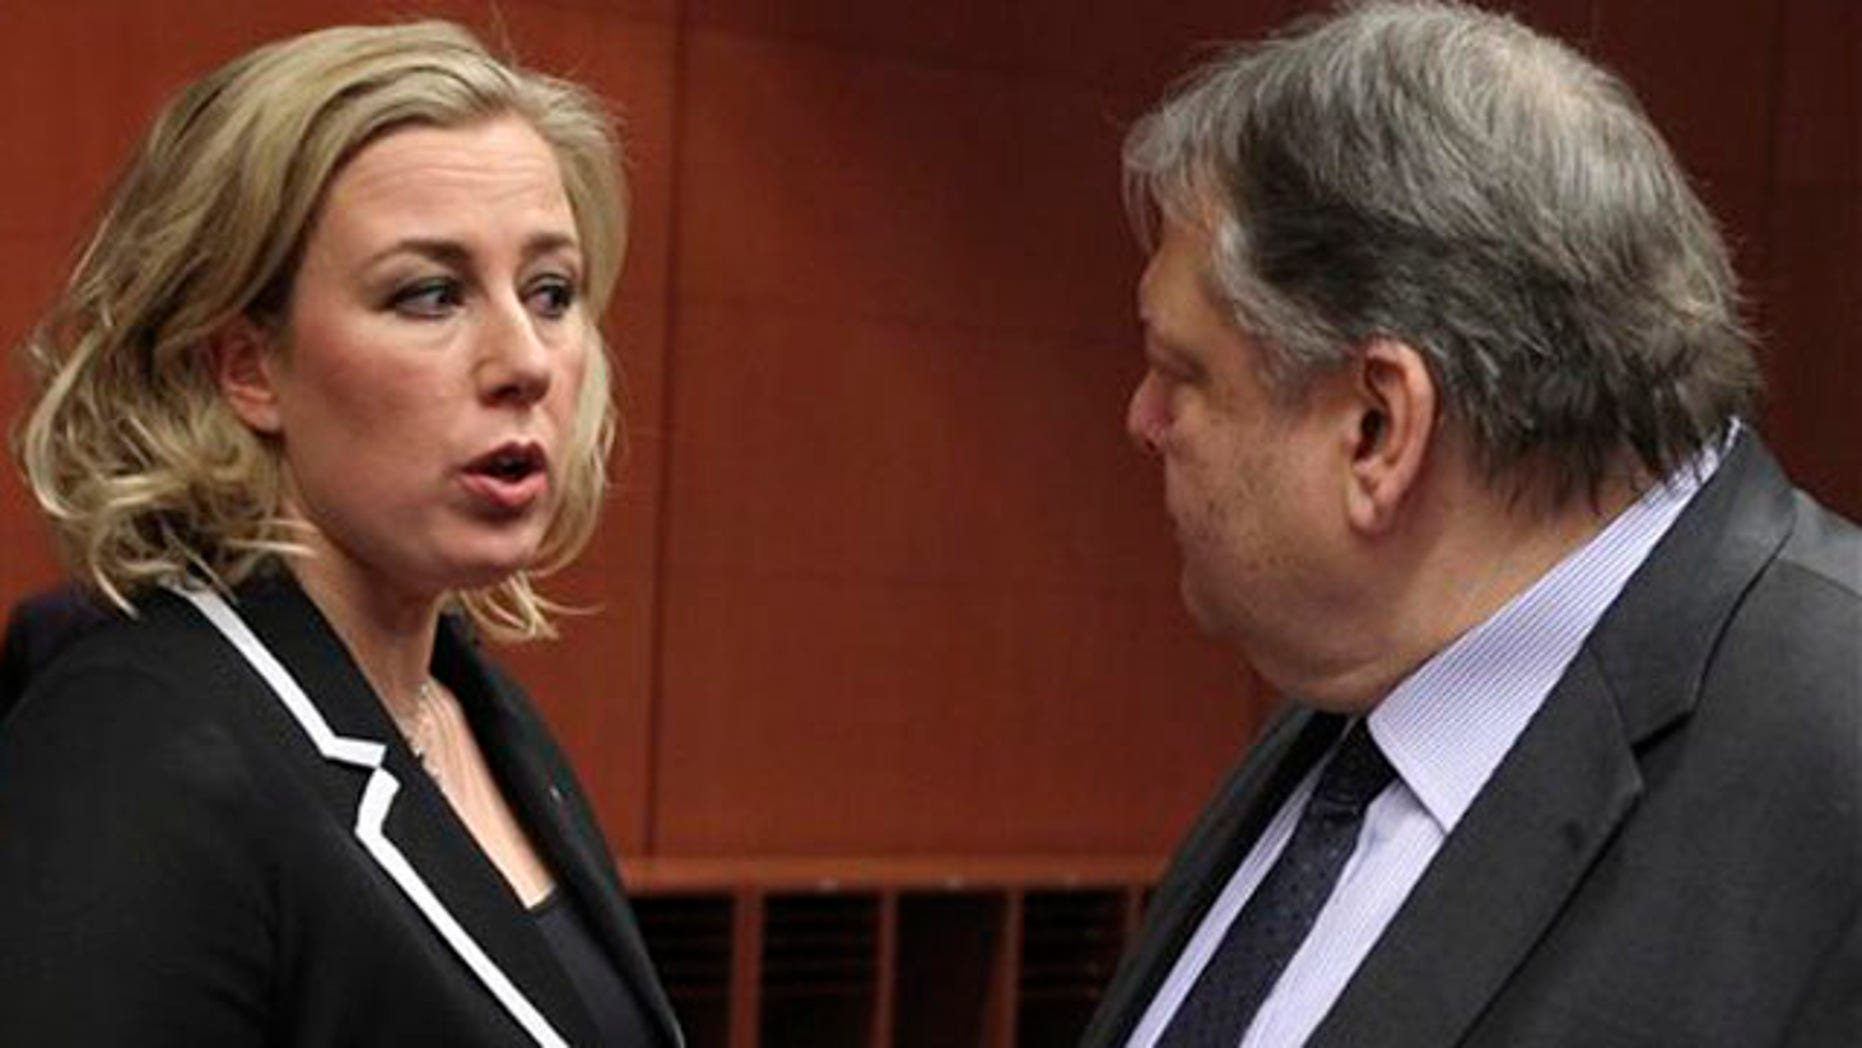 Feb. 9, 2012: Finnish Finance Minister Jutta Urpilainen, left, talks with Greek Finance Minister Evangelos Venizelos, at the European Council building in Brussels. There are fundamental doubts among some of the countries that use the euro over whether a second massive bailout for Greece will actually work, a European official said.